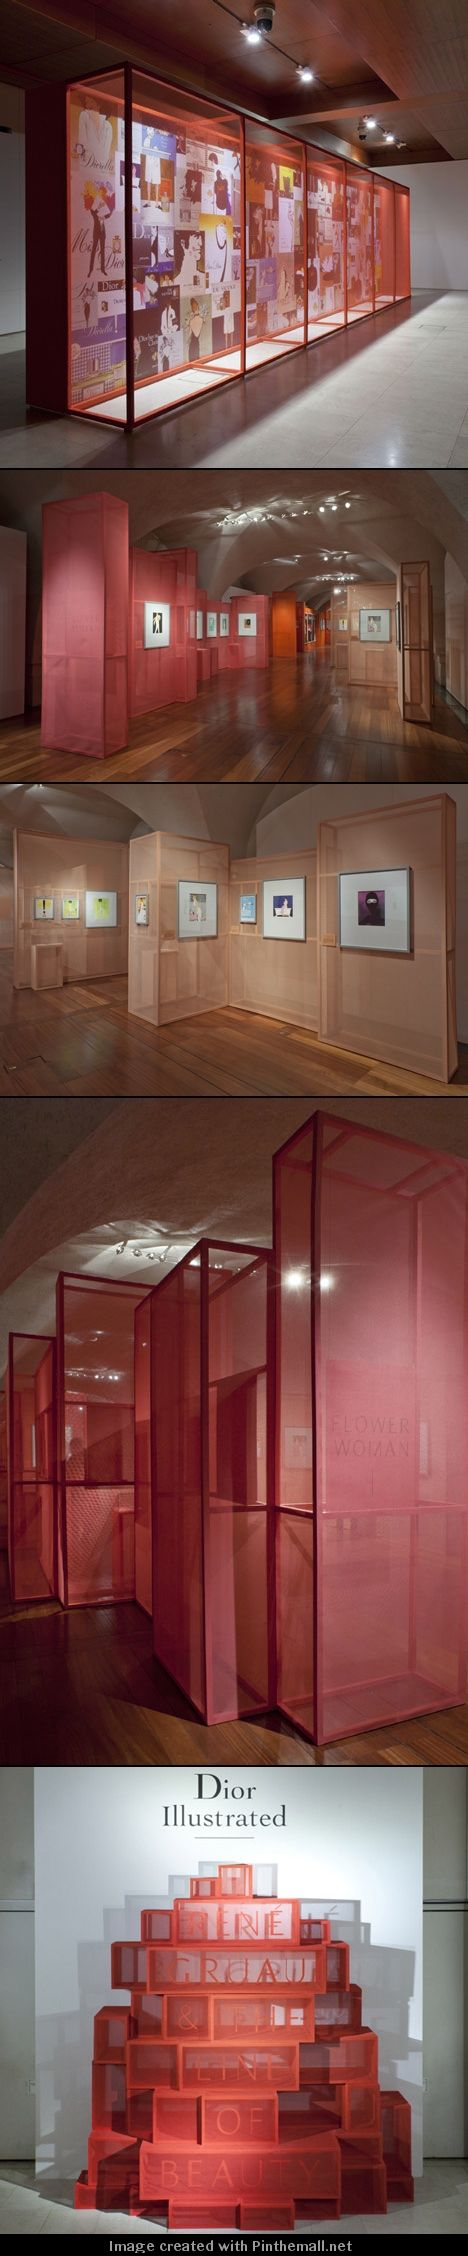 This exhibition designed by Gitta Gschwendtner for London's Somerset House displayed fashion drawings on gauze-covered boxes.